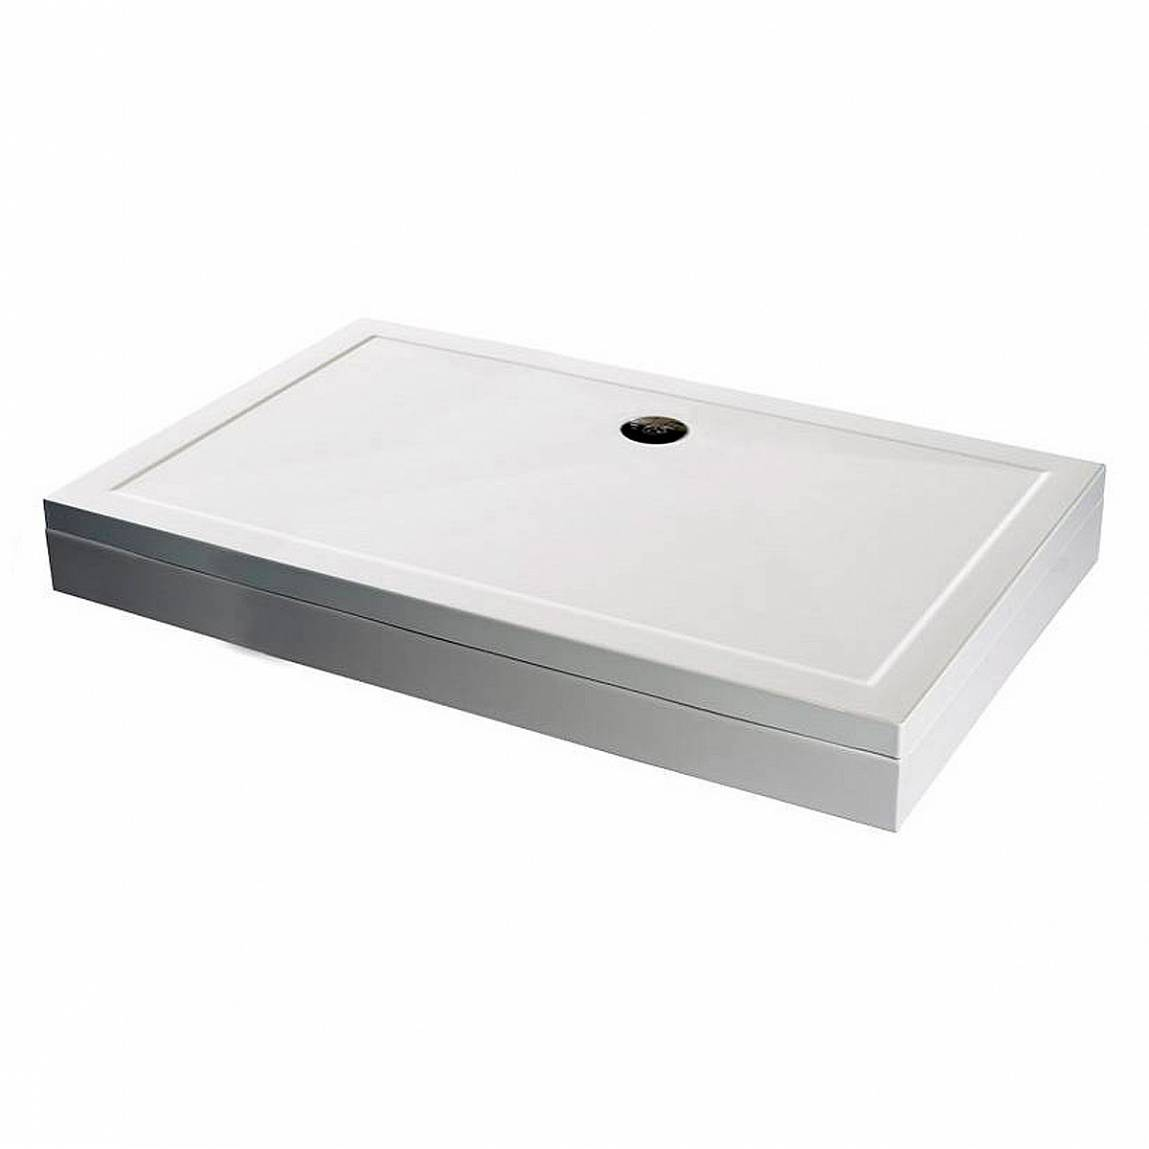 Image of Rectangular Stone Shower Tray & Riser Kit 800 x 760